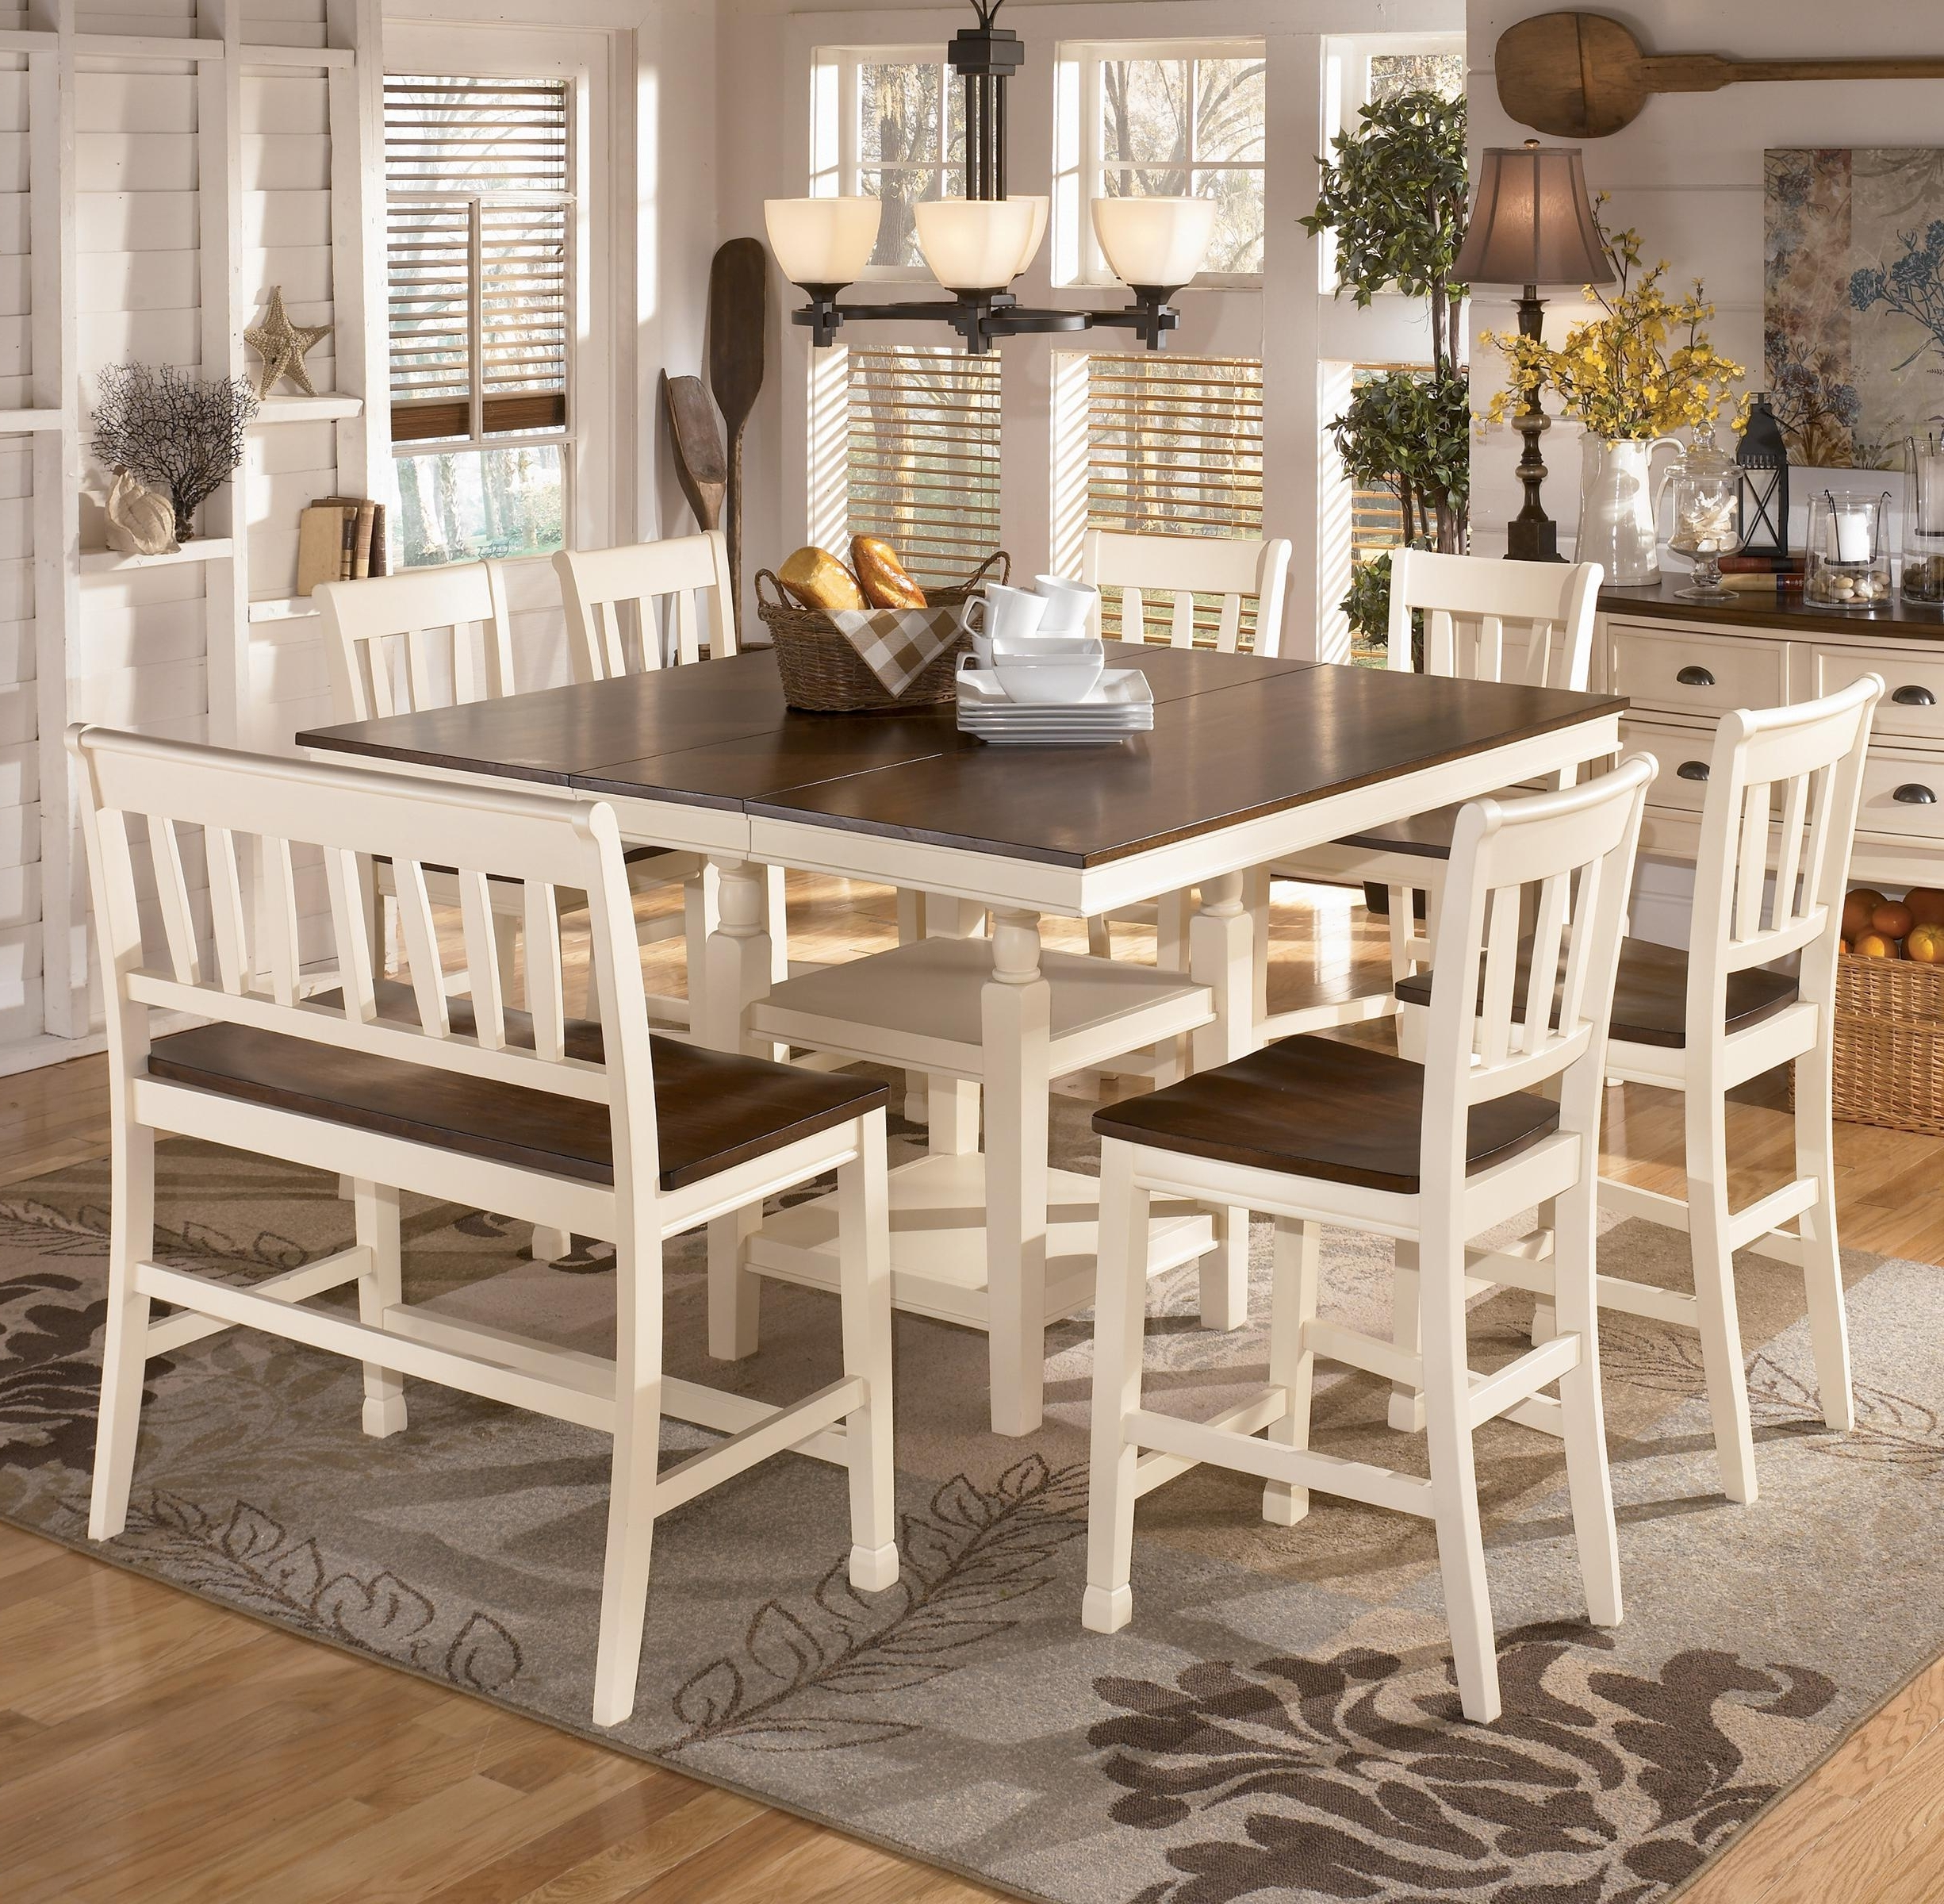 Widely Used Signature Designashley Whitesburg 8 Piece Square Counter For Jaxon 5 Piece Extension Round Dining Sets With Wood Chairs (View 25 of 25)